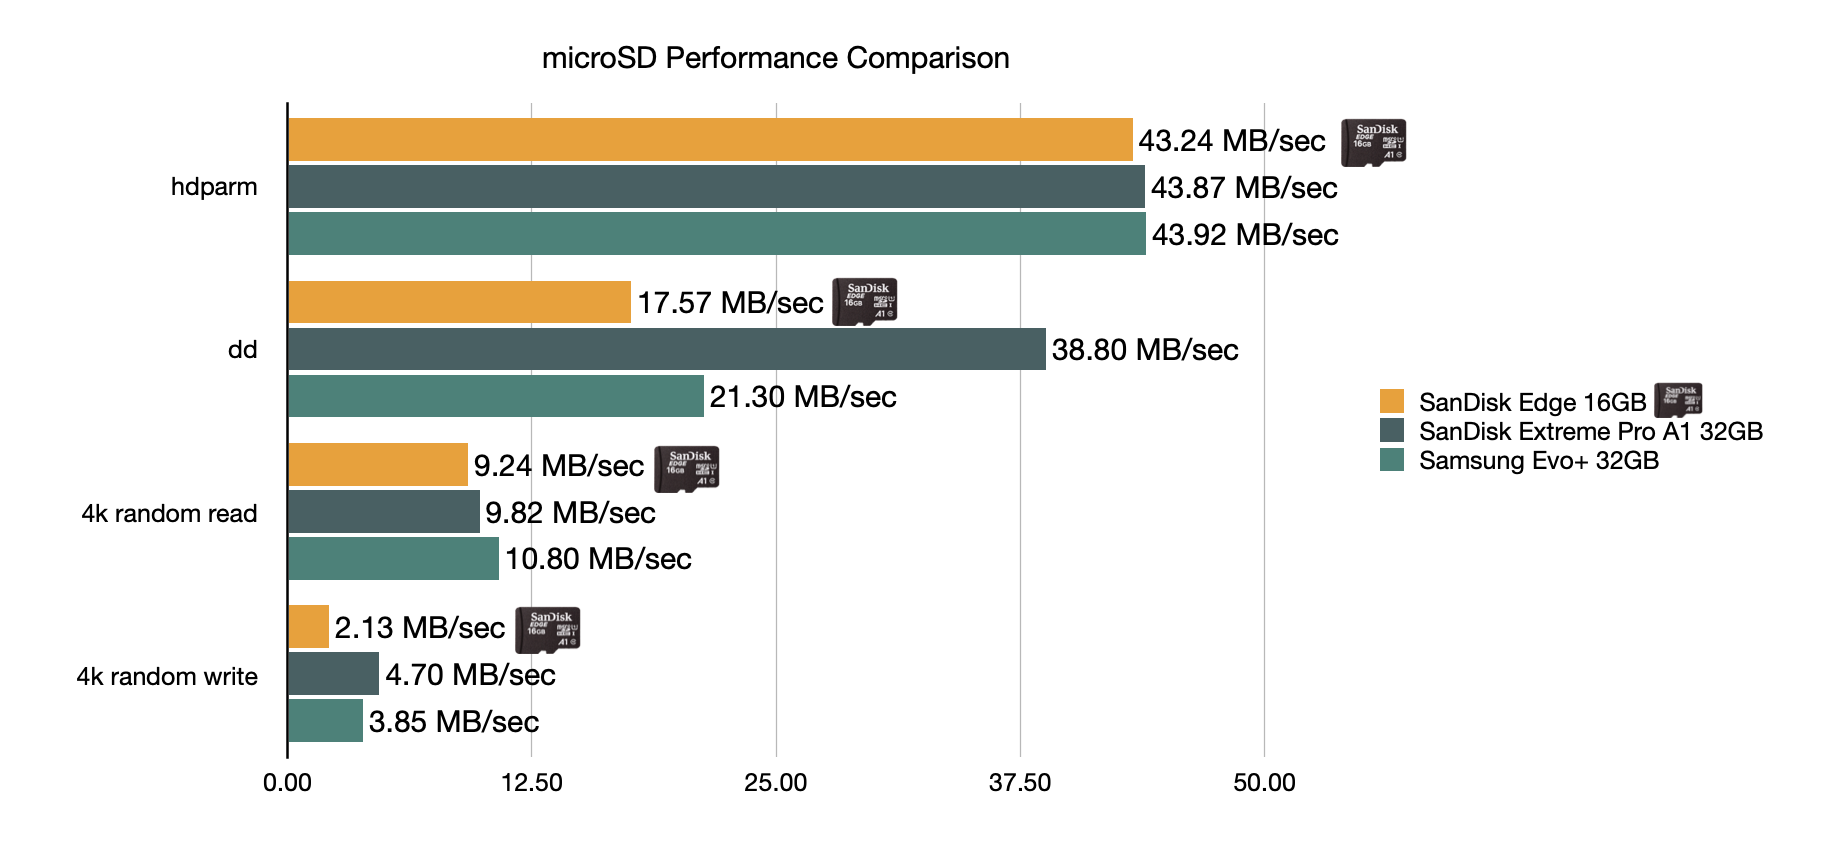 microSD card performance comparison - SanDisk Edge